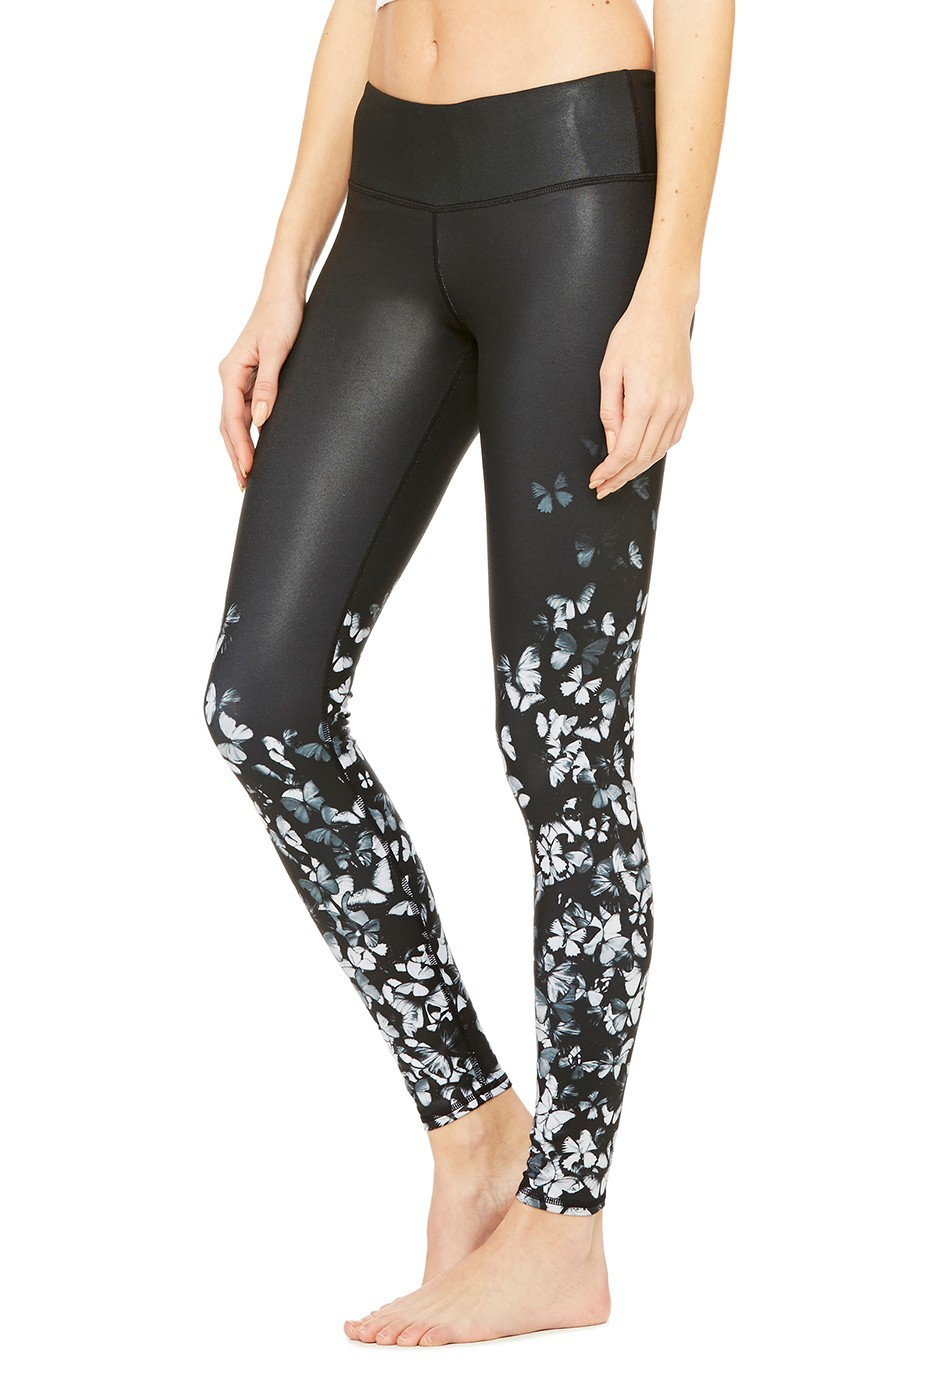 7221ae719840bd Yoga Leggings butterflies Printed Workout Legging Quality Sports Jogging Fitness  Sport Compression Gym Leggings Running Tights -in Yoga Pants from Sports ...